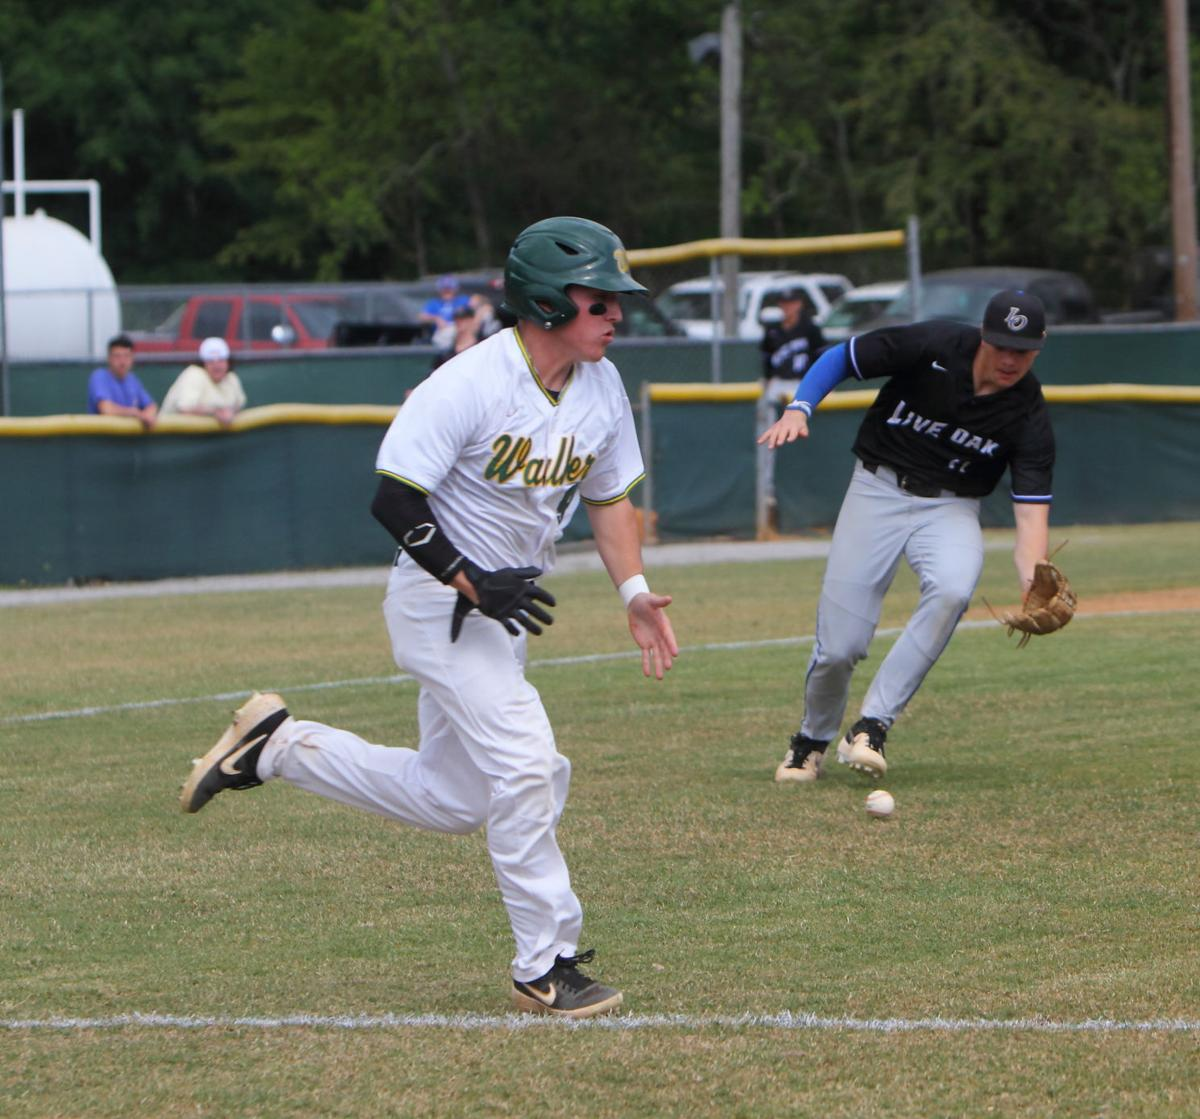 Live Oak baseball vs. Walker: Lane Hutchinson, Camden Carver